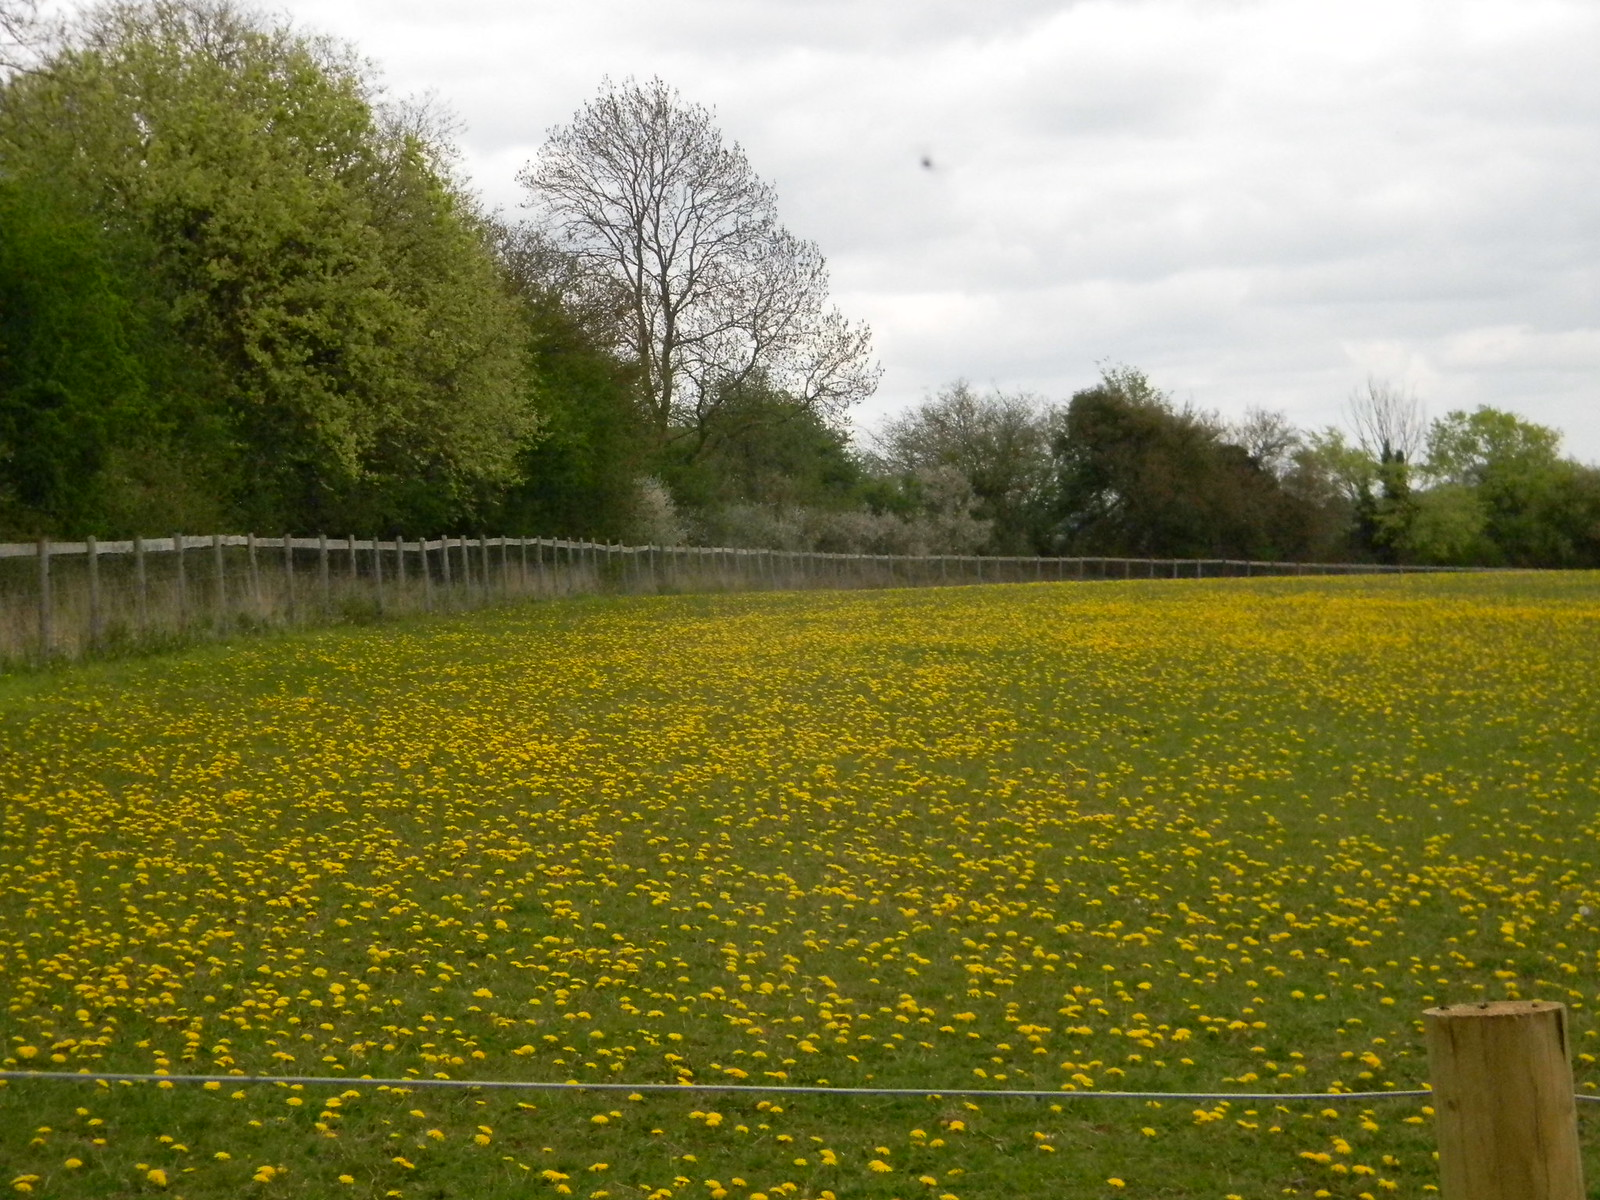 Field of dandelions Shiplake to Henley